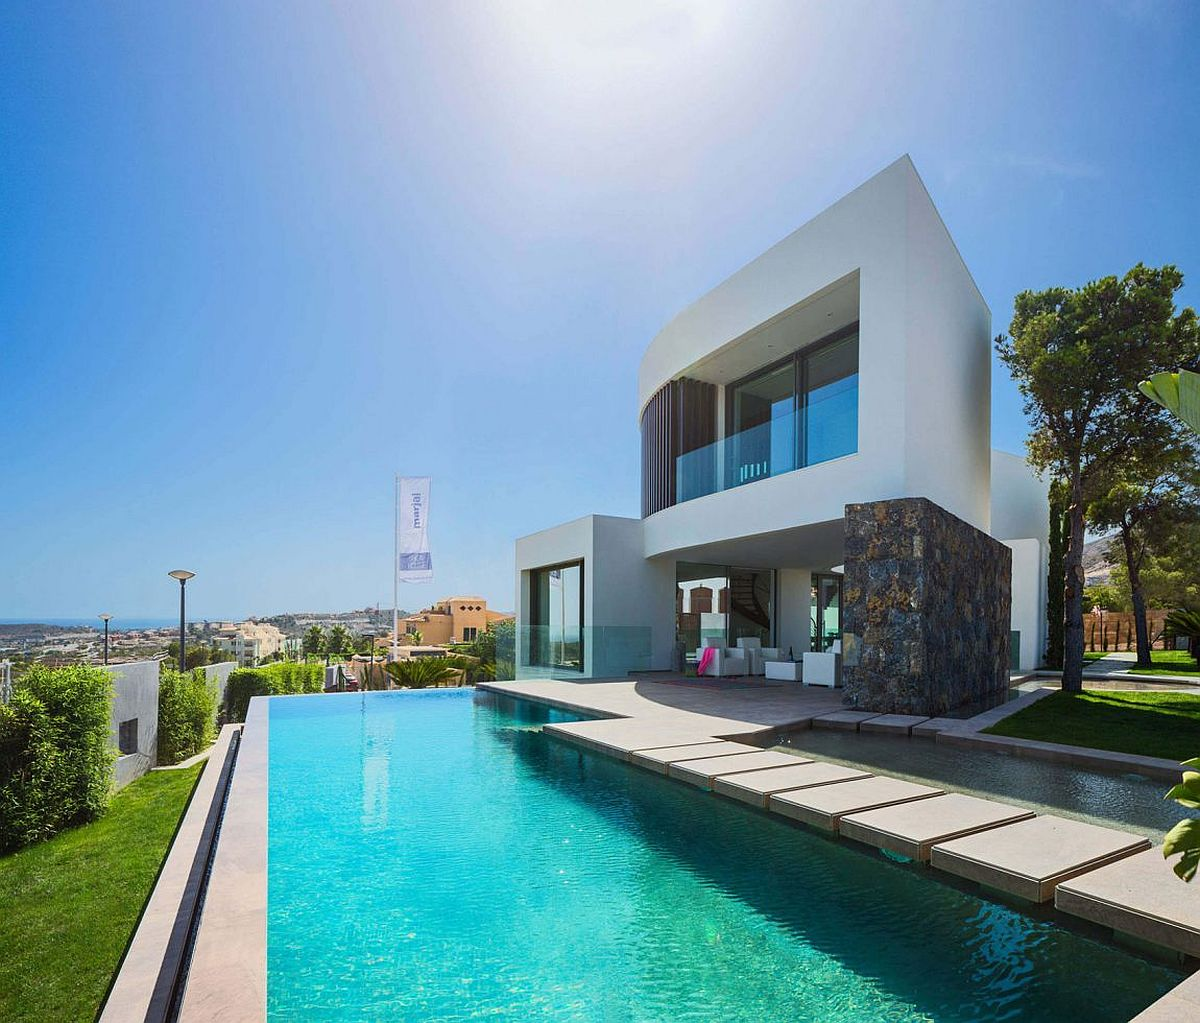 Contemporary pool design with stepping stones adds to the style of the Spanish home Casa Finestrat: Contemporary Spanish Home with Chic Mediterranean Charm